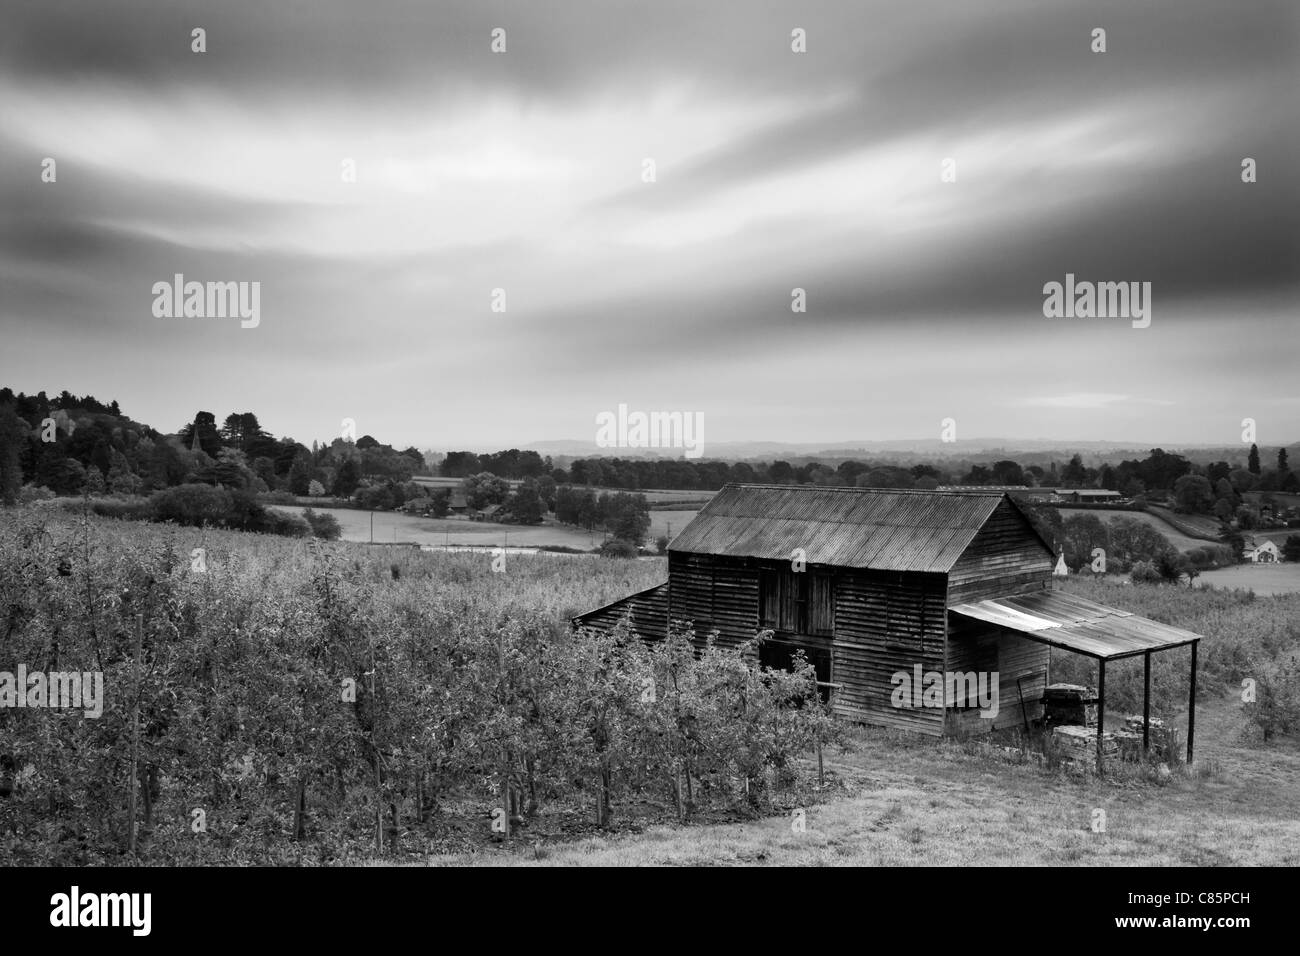 Old Apple Barn in Orchard Gloucestershire UK - Stock Image